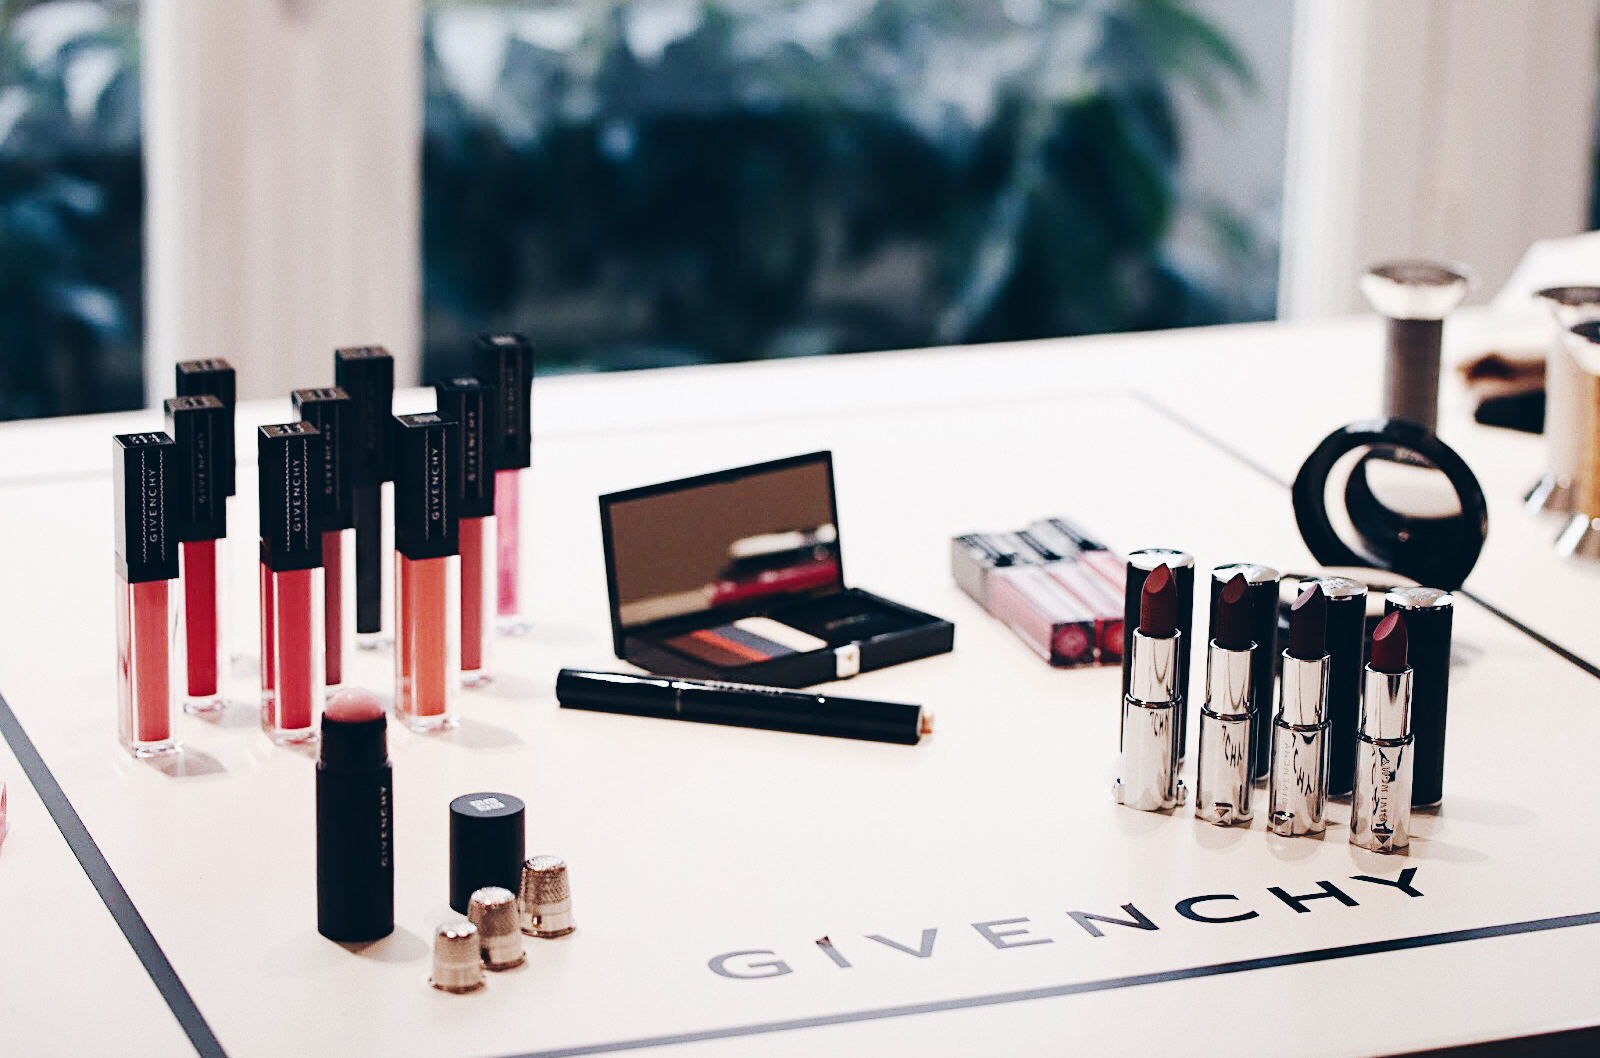 givenchy collection spring printemps maquillage makeup 2018 swatches